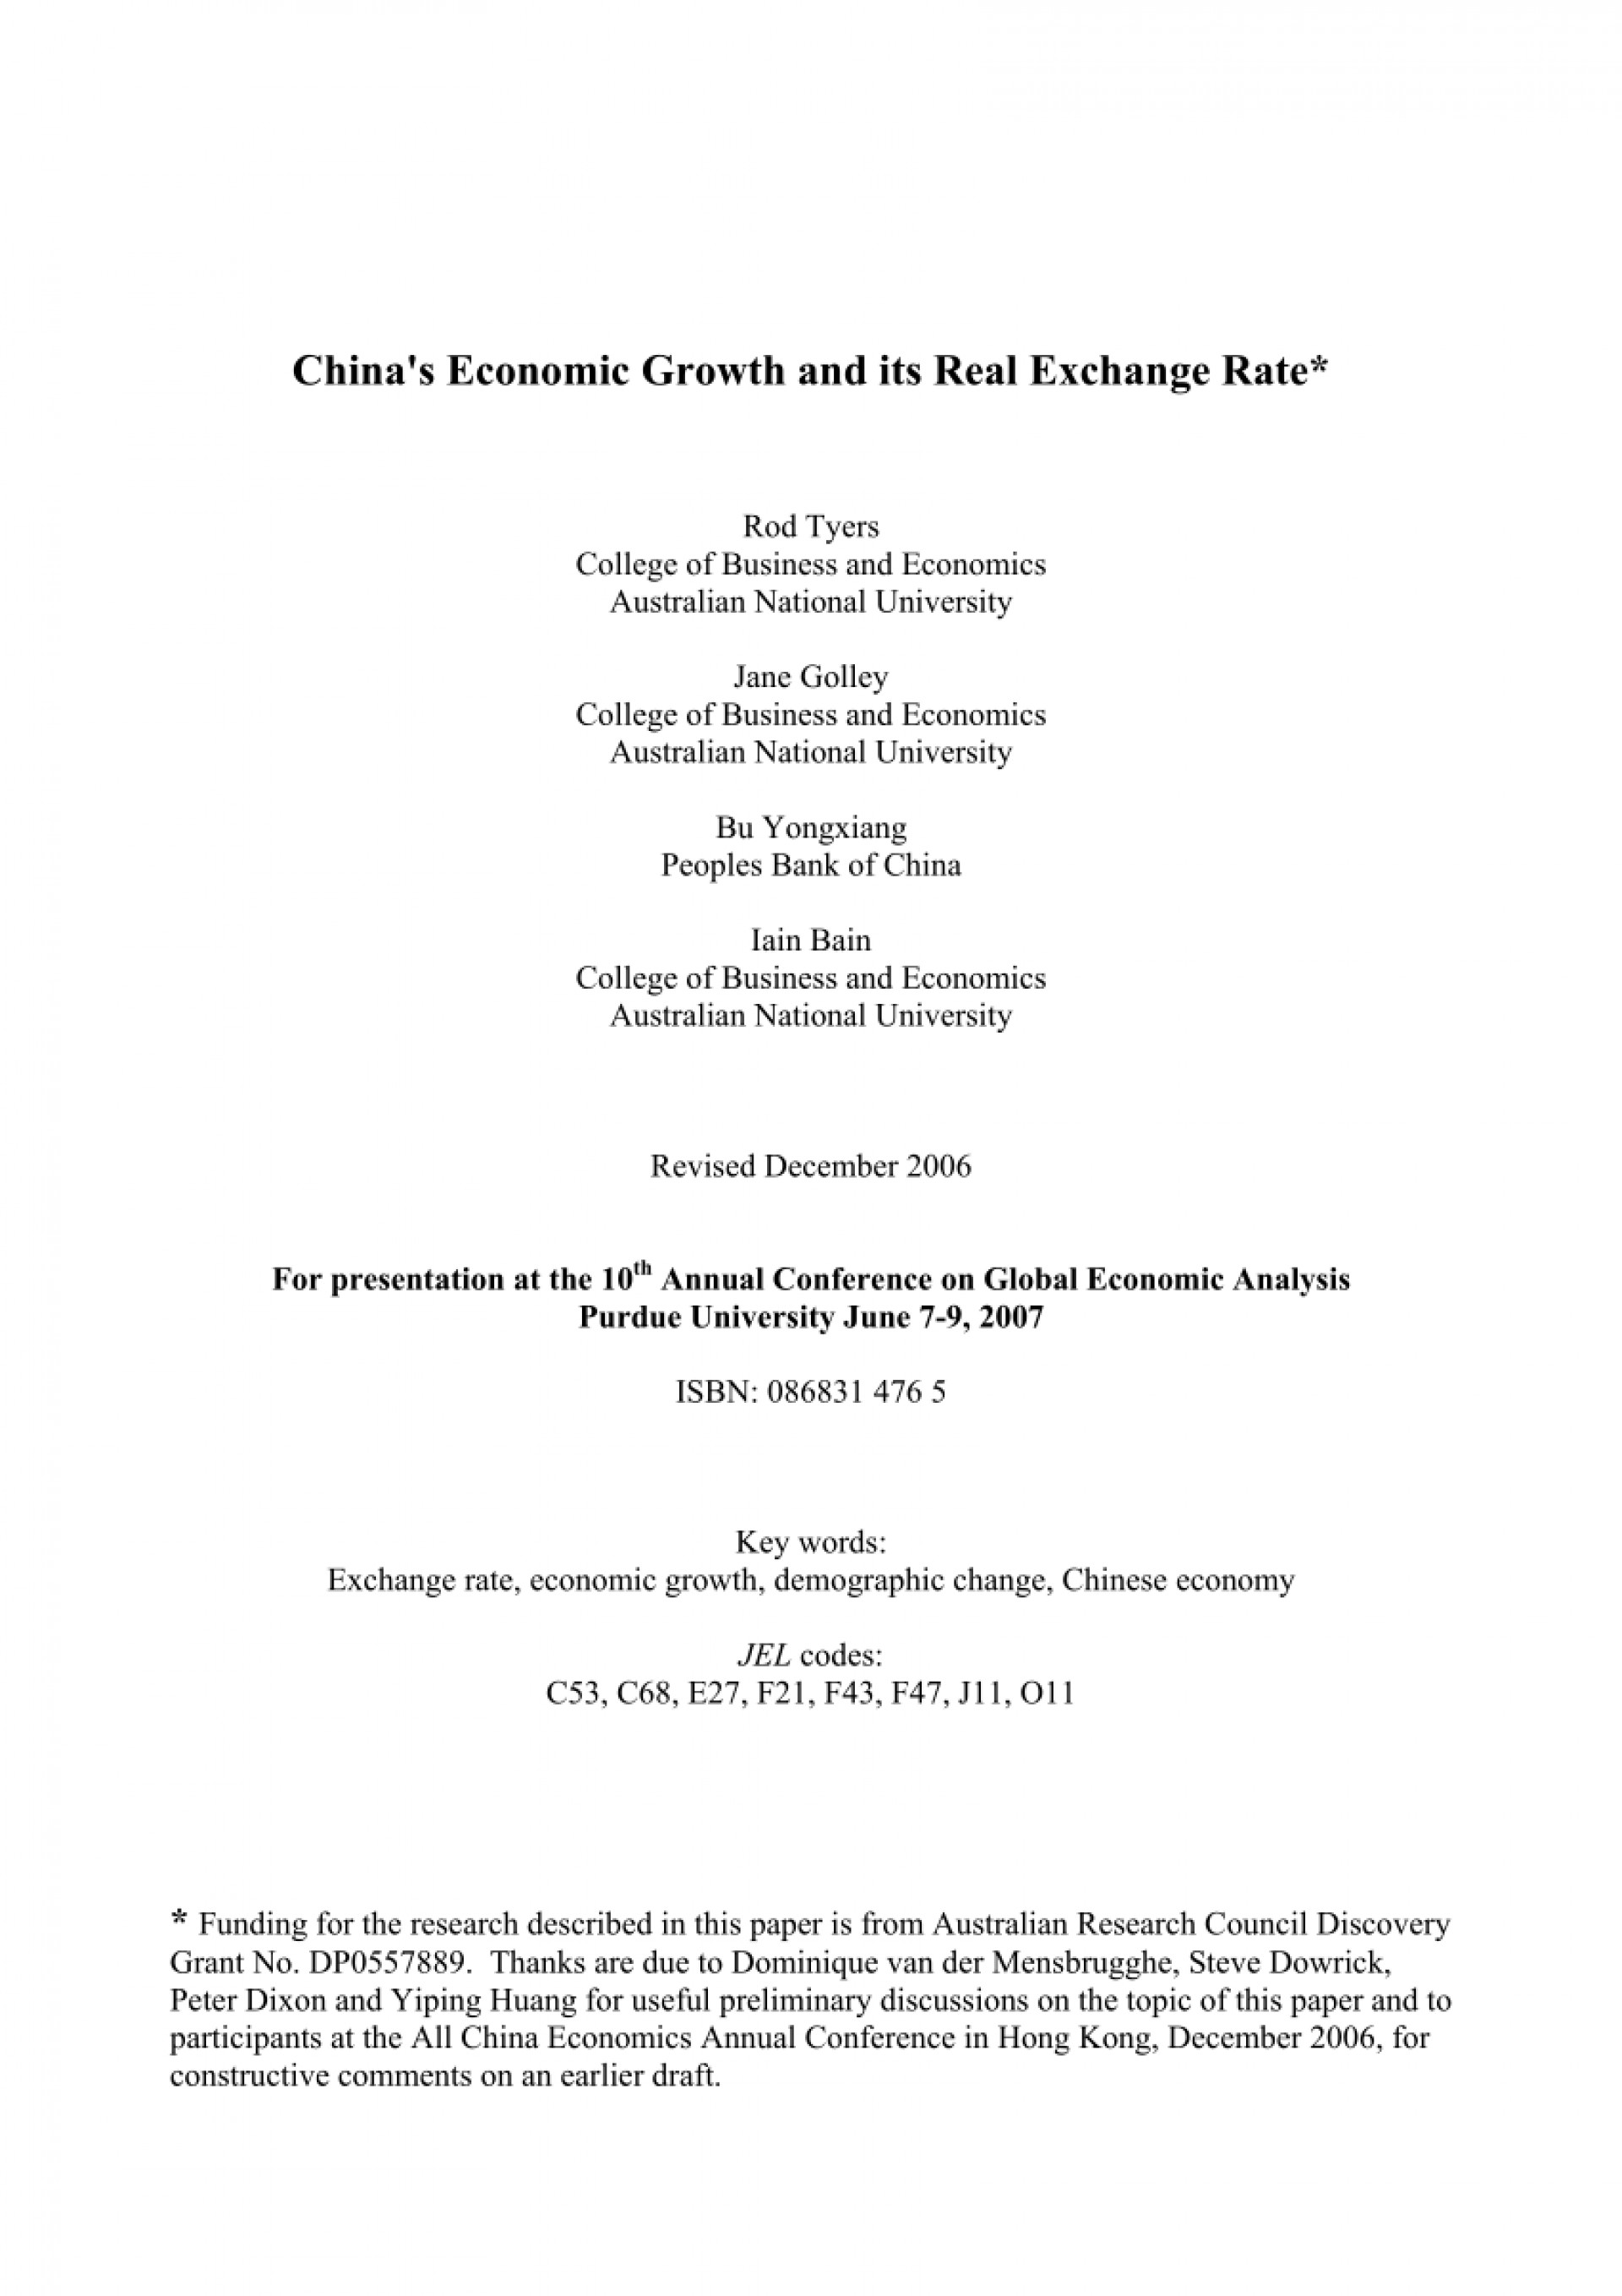 002 Largepreview Research Paper Chinese Economy Awful Topics 1920